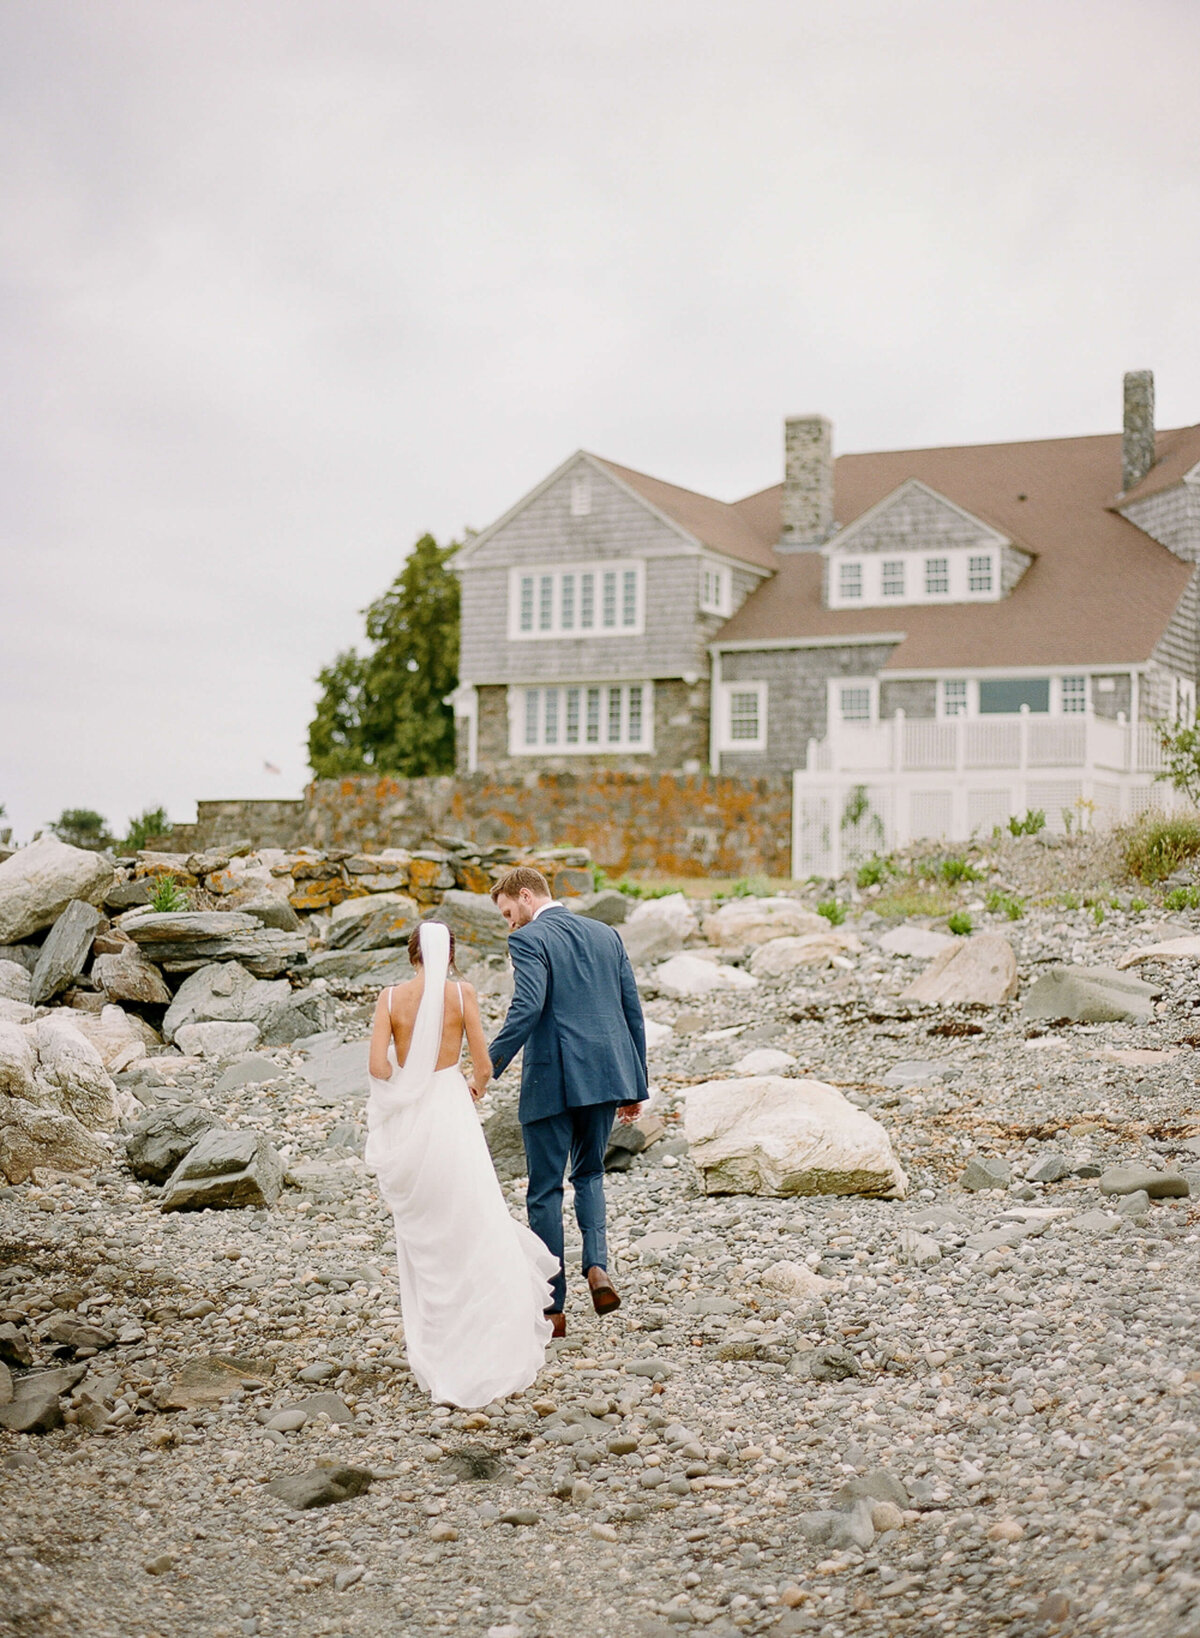 coastal-new-hampshire-wedding-clay-austin-photography-28